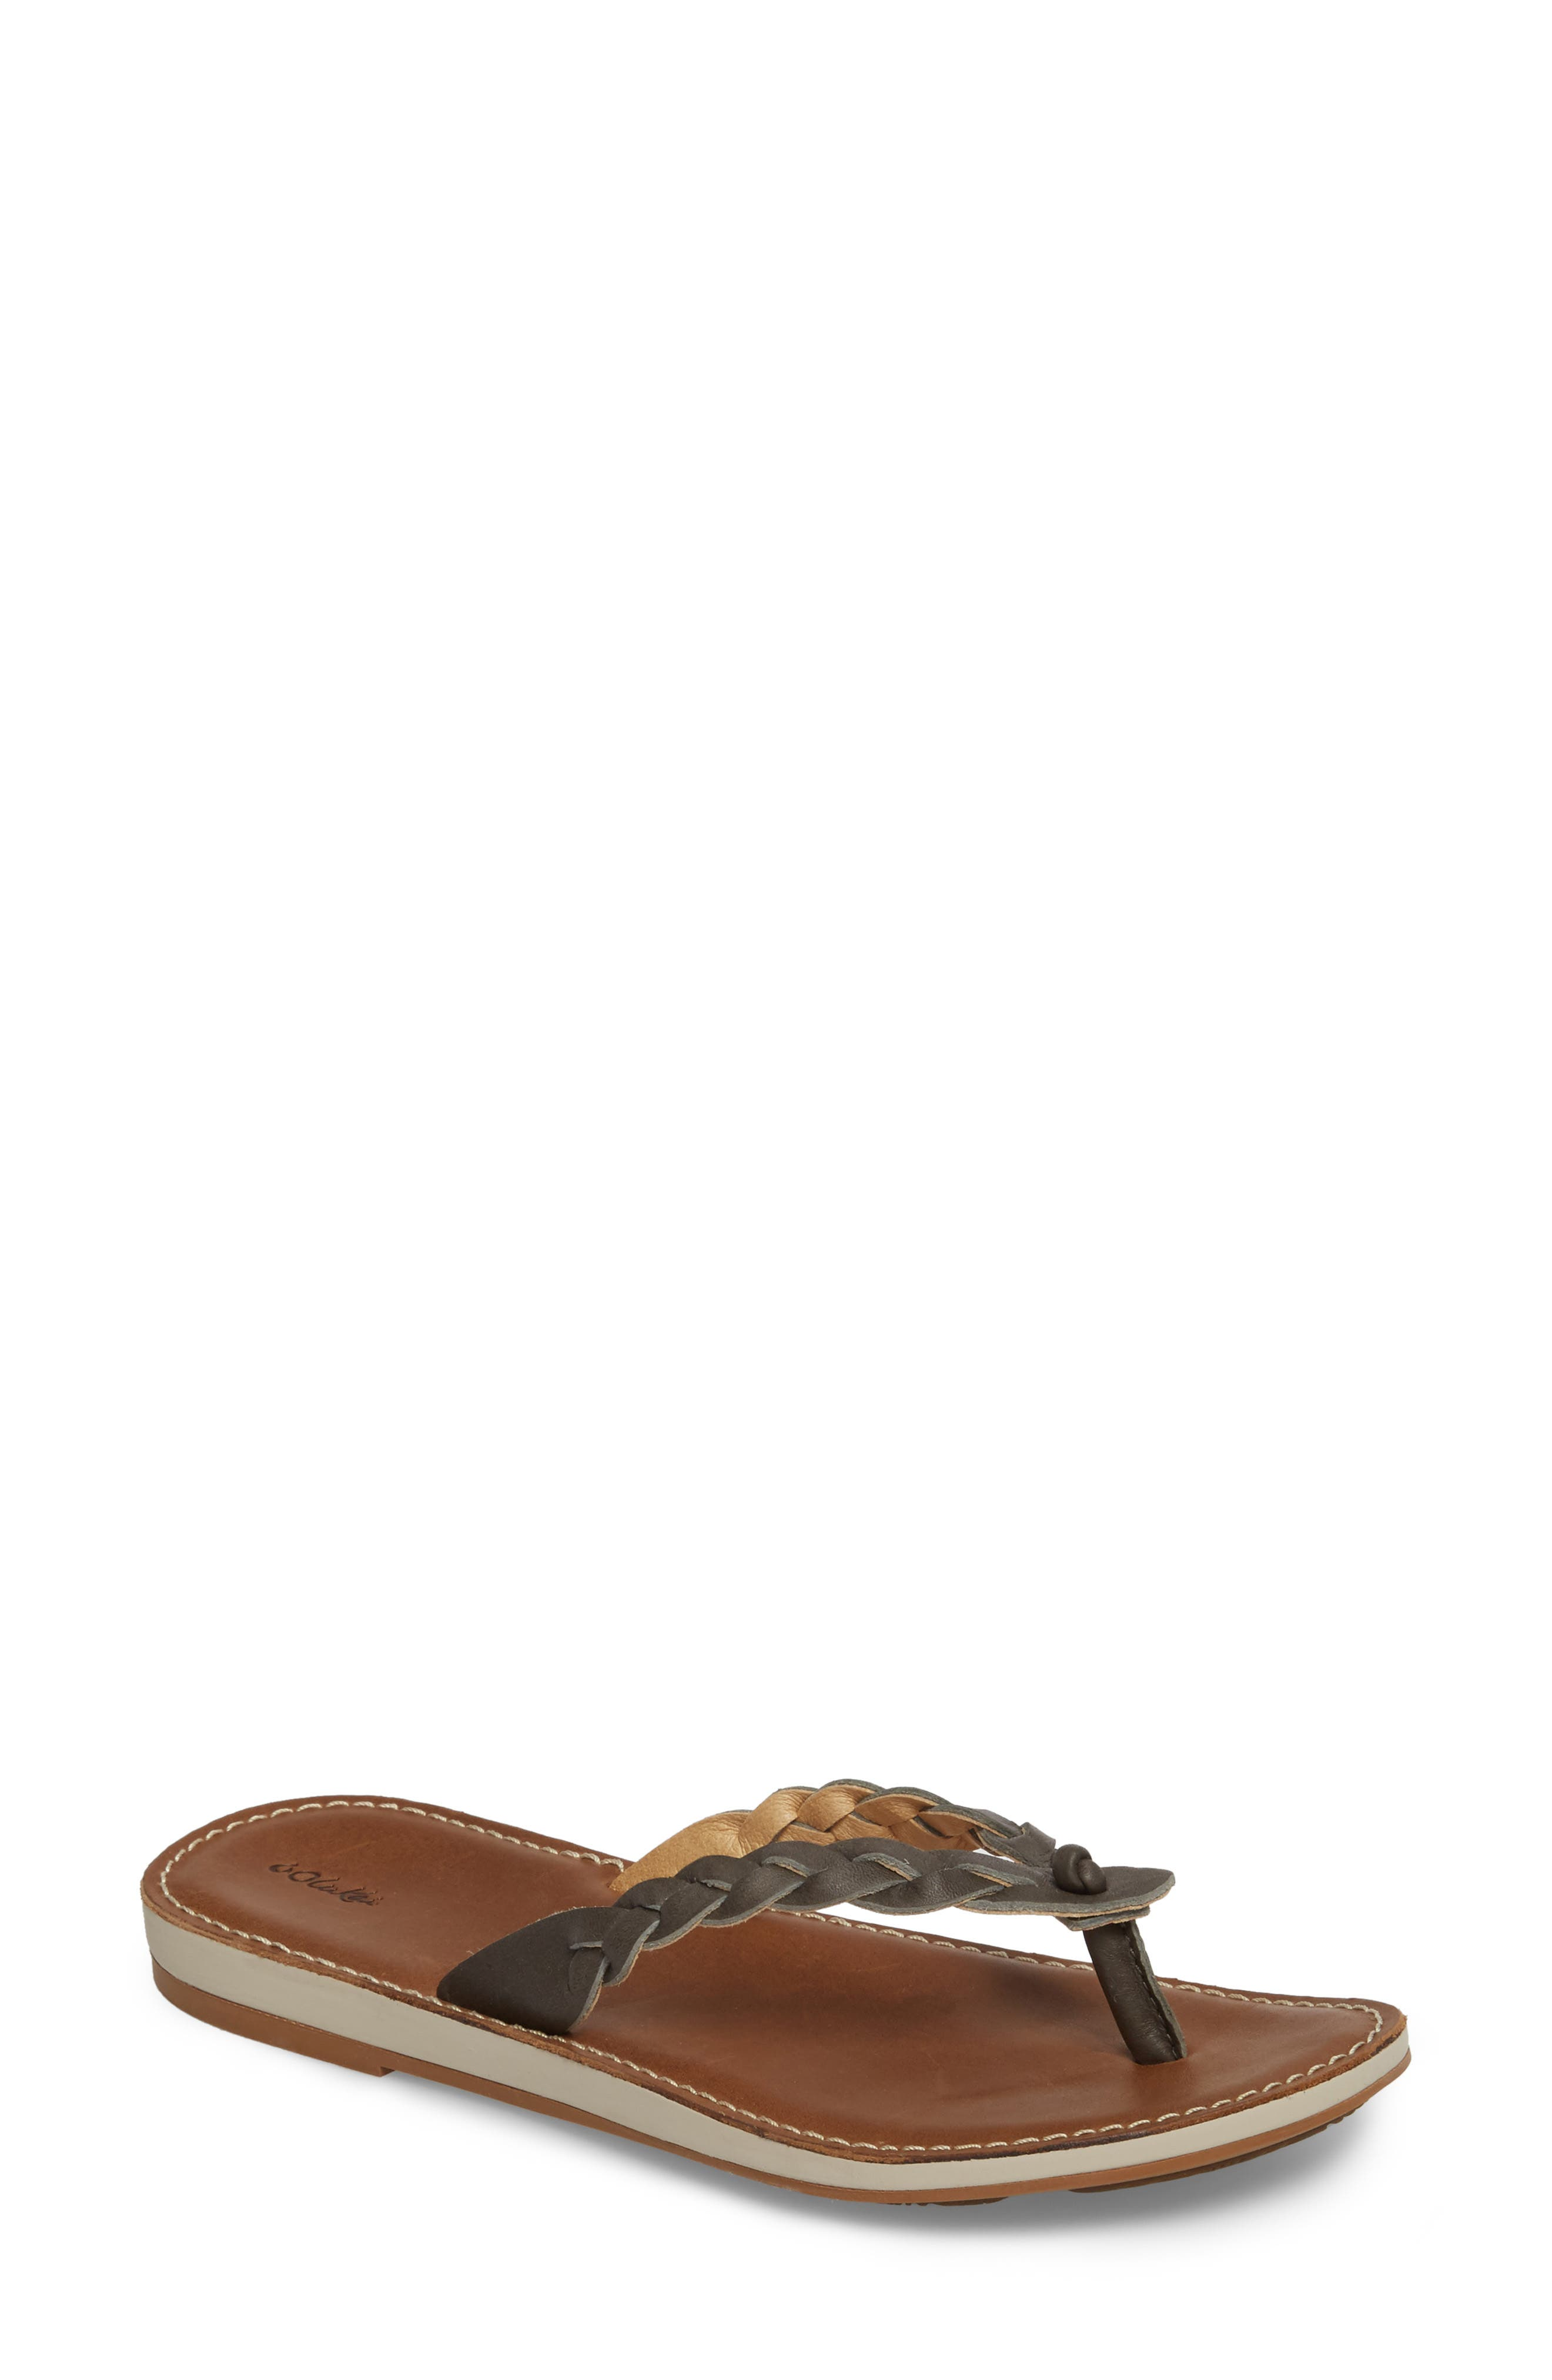 Kahiko Flip-Flop,                             Main thumbnail 1, color,                             SLATE/ TAN LEATHER